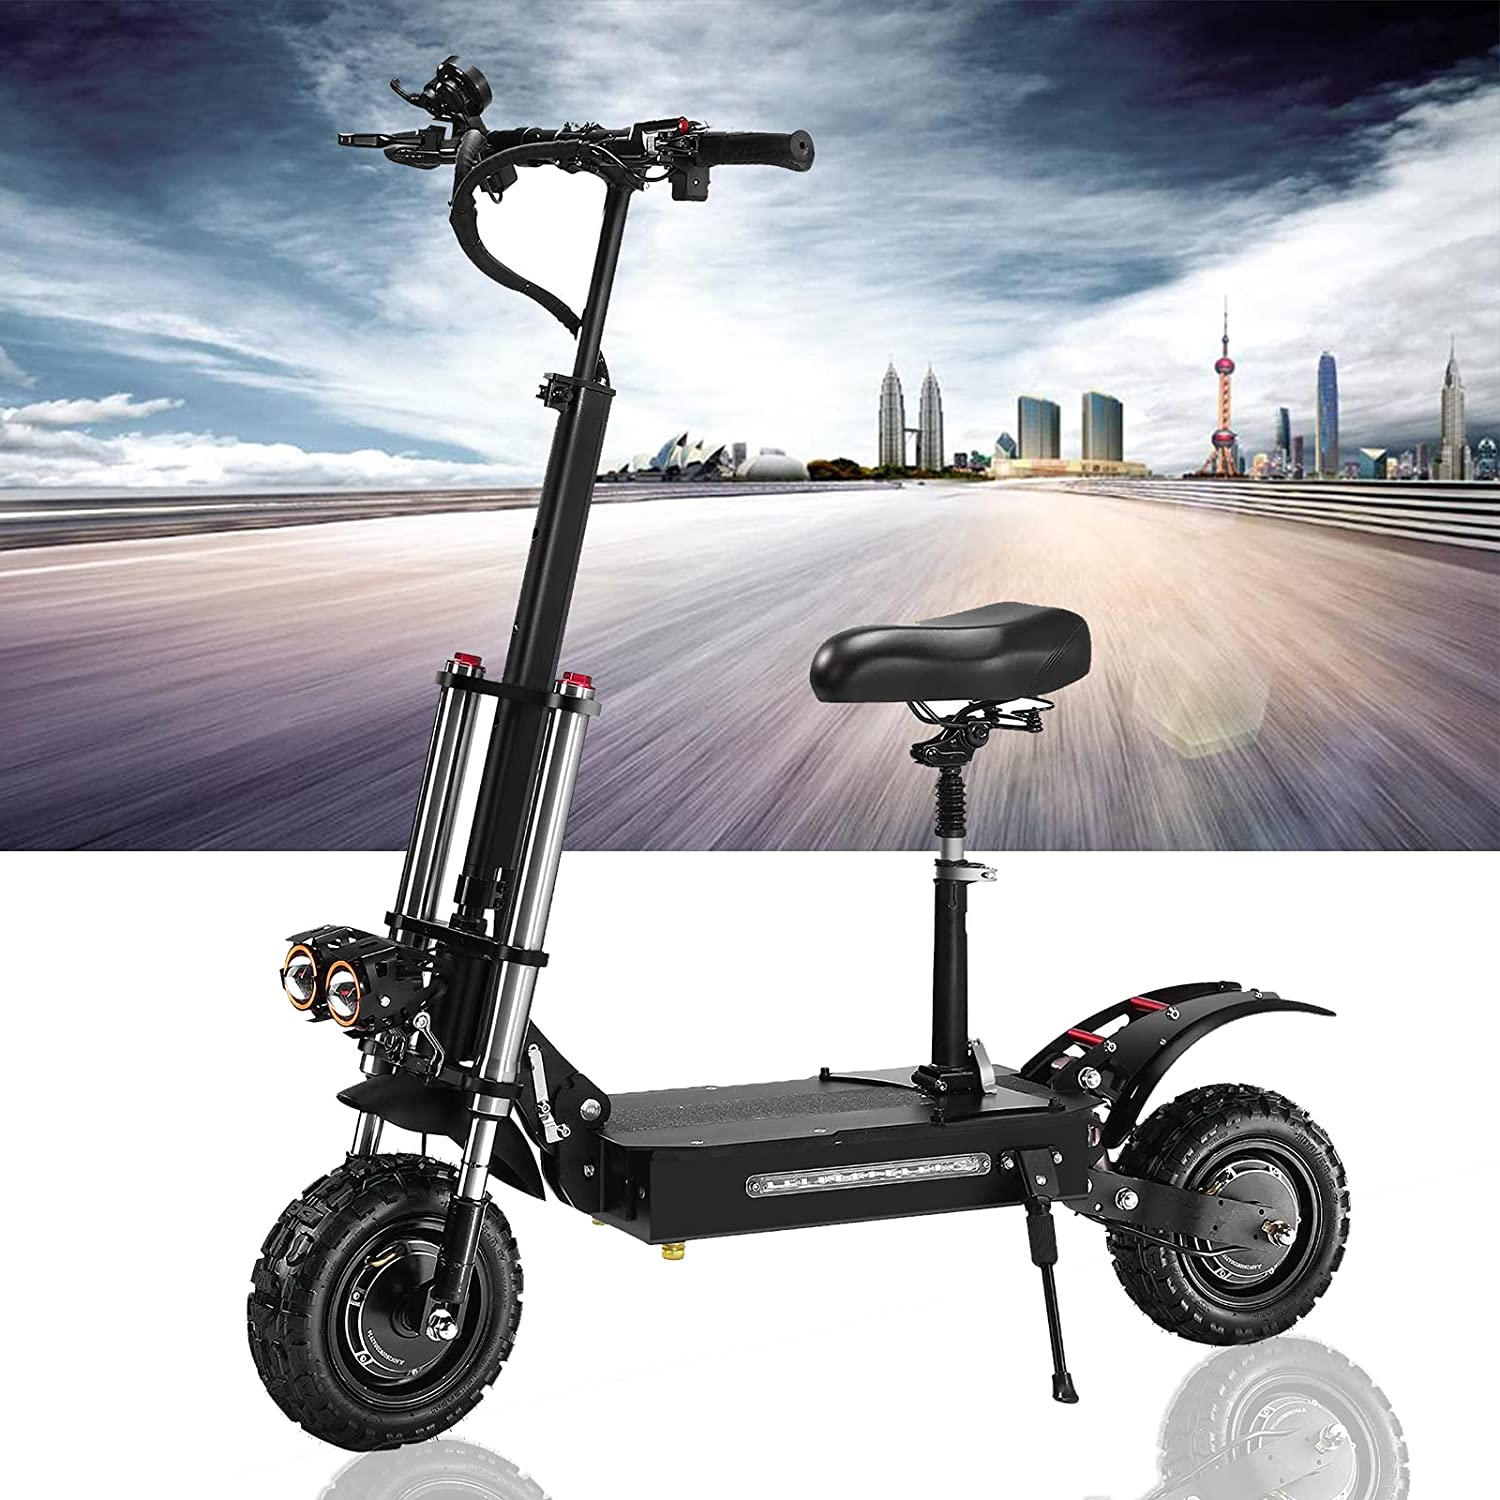 TDHLW All items in the store High quality new Electric Scooter Off-Road Foldable S Max